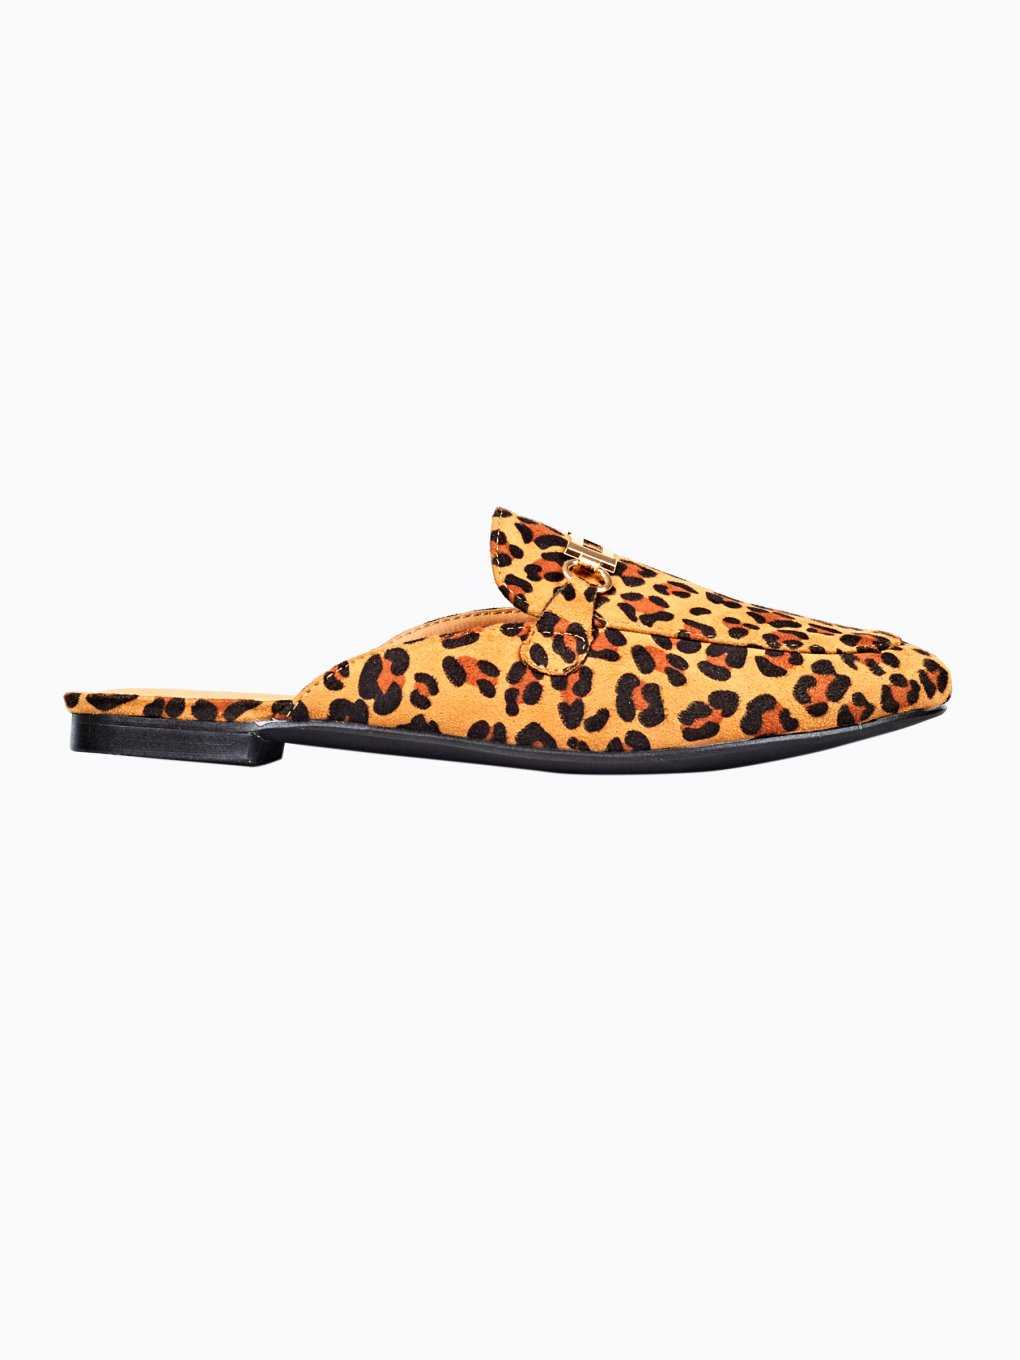 Animal print loafer slides